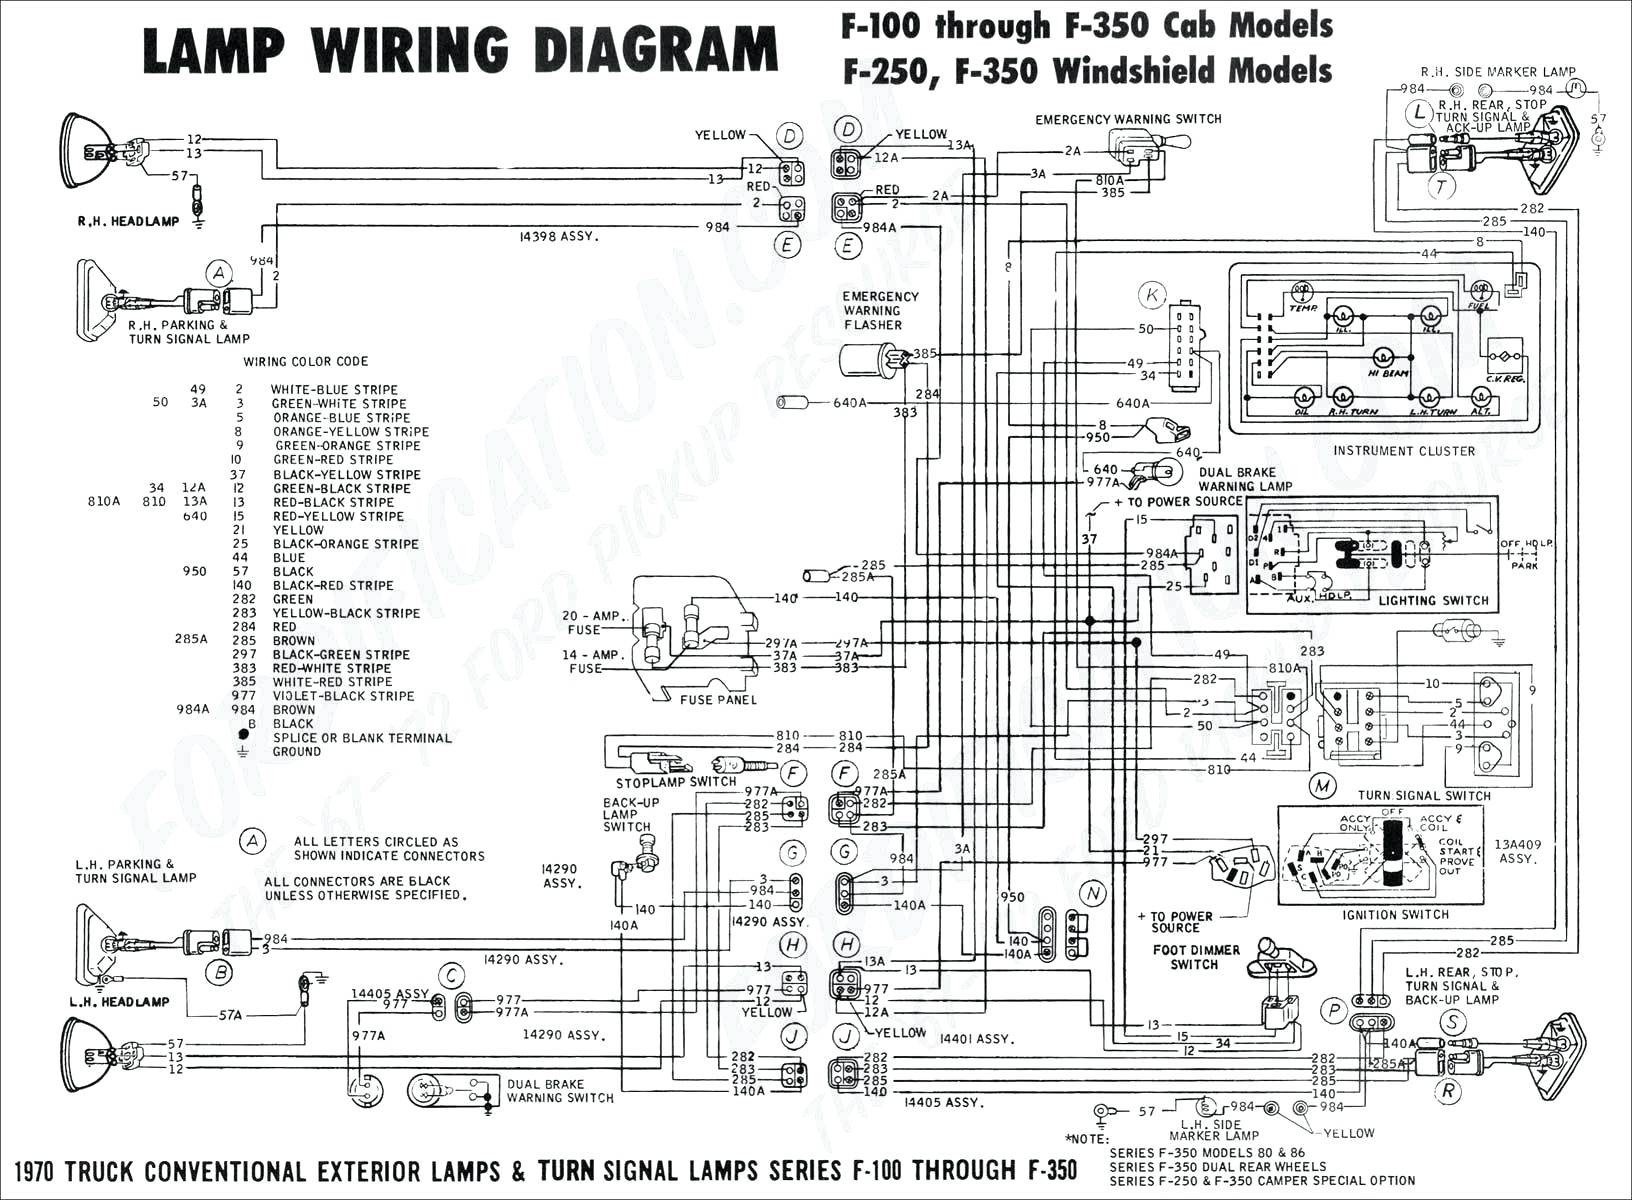 hight resolution of 2014 2015 gm wiring diagrams wiring diagram blogs 1991 chevy silverado wiring diagram 2014 chevy silverado wiring diagrams